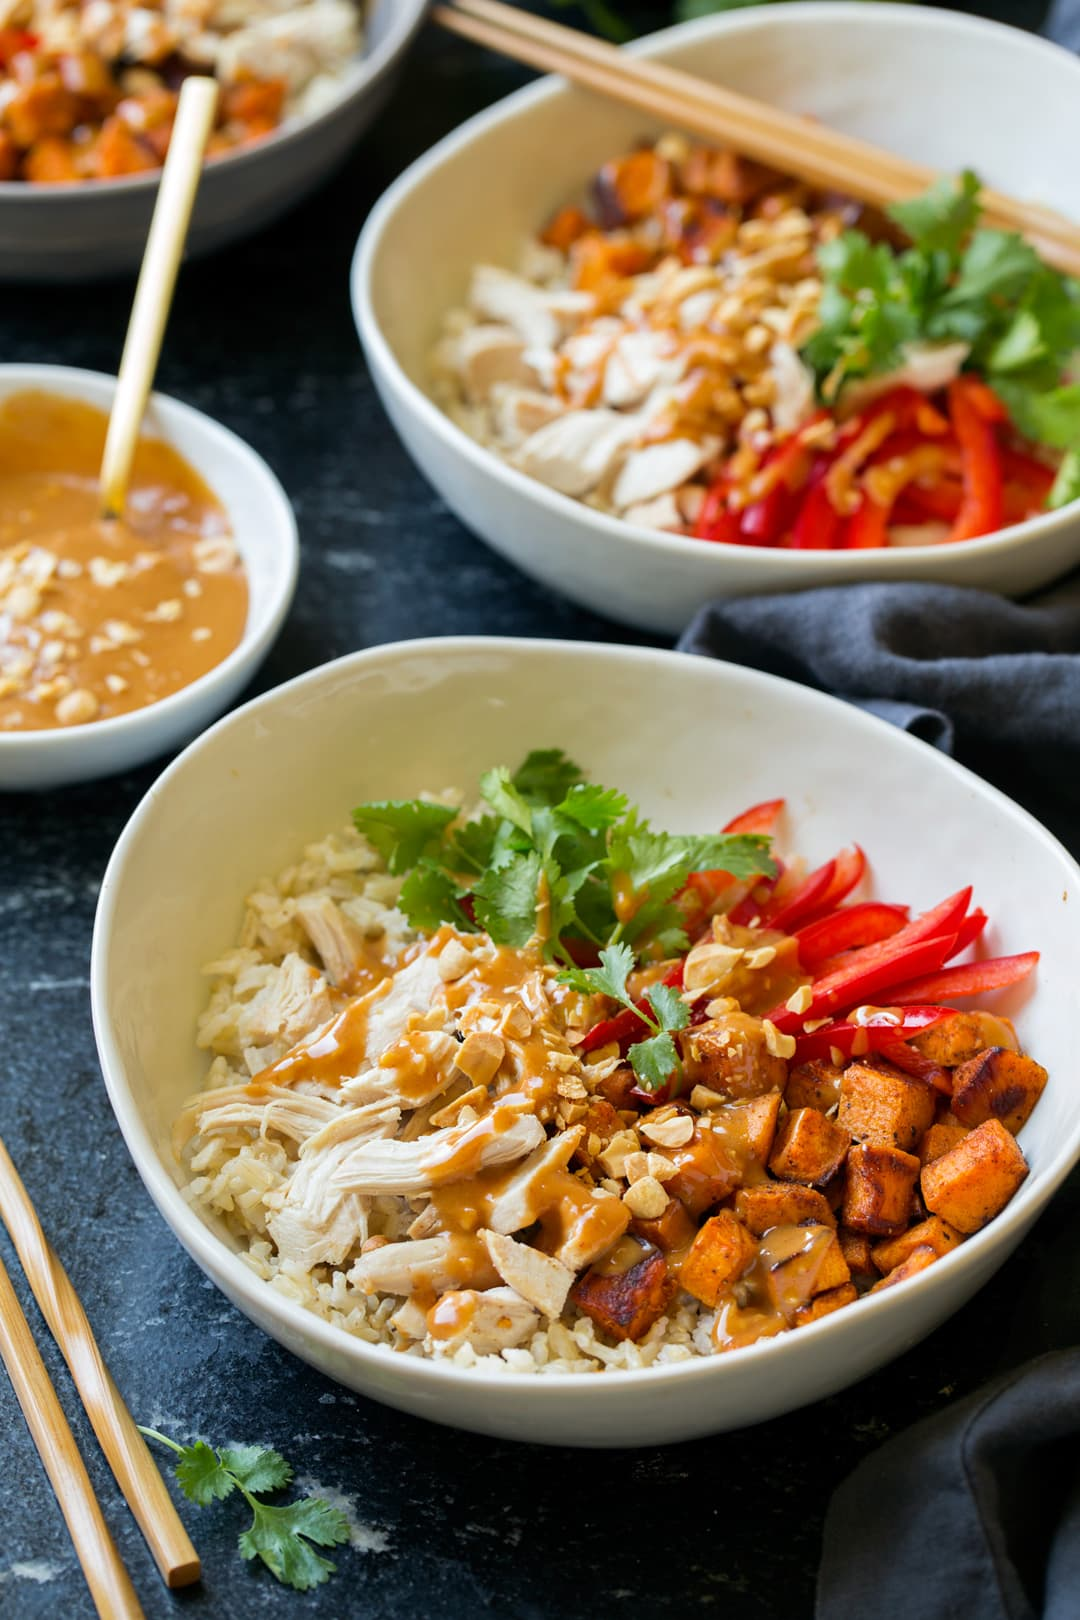 Chicken Veggie Brown Rice Bowls with Peanut Sauce